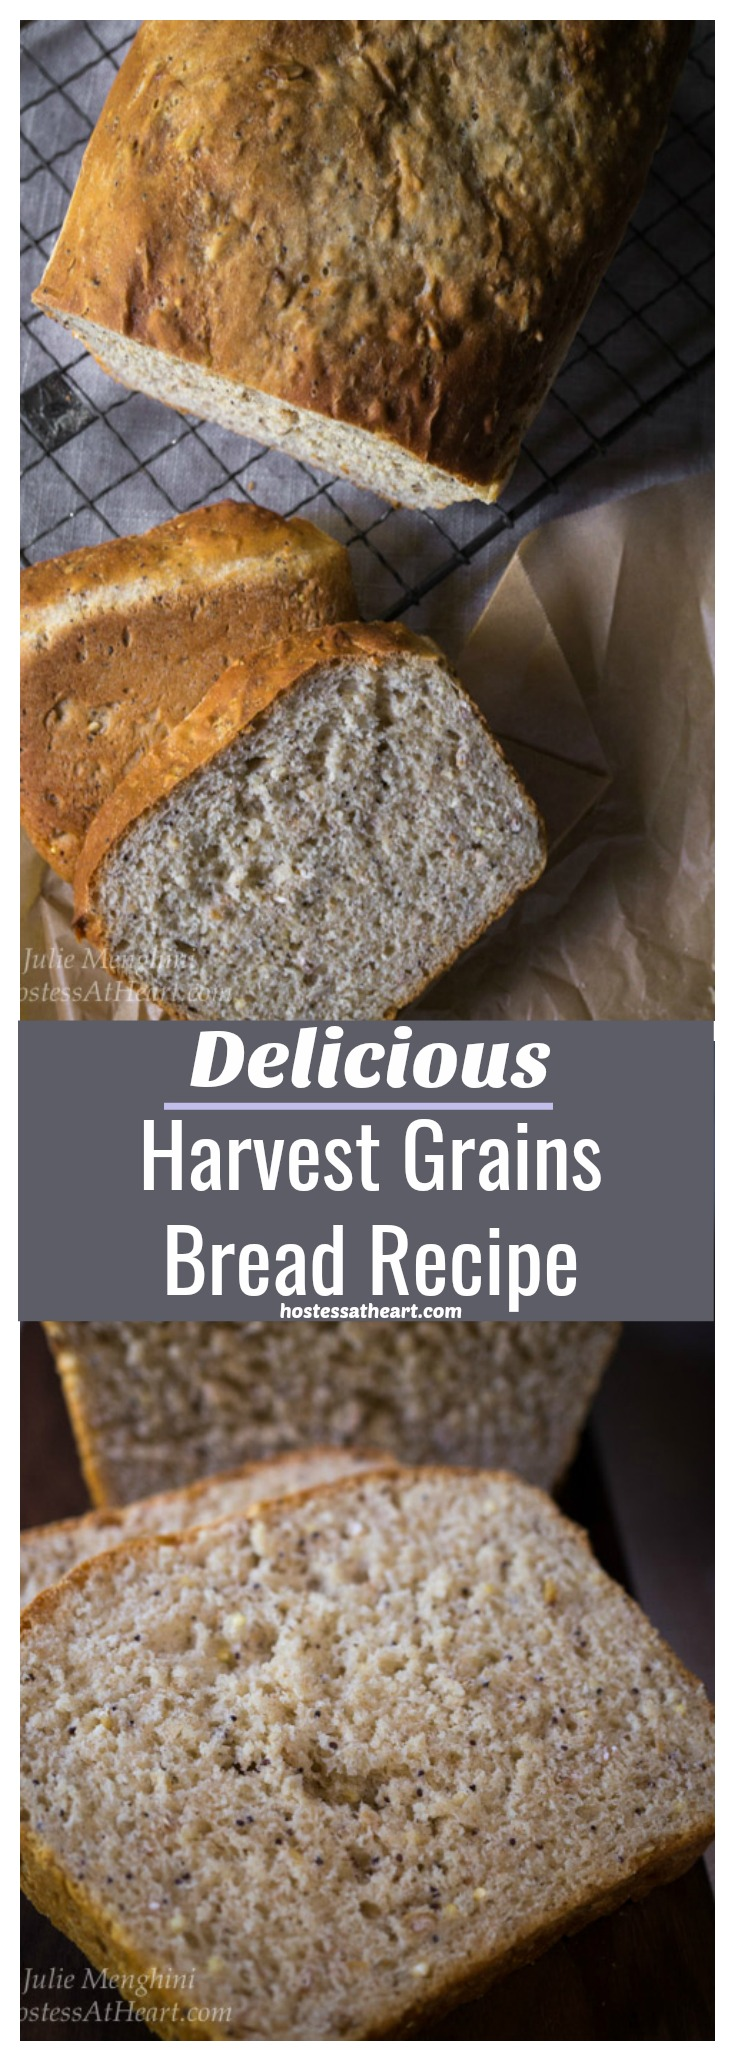 This Delicious Harvest Grains Bread recipe is a warm and hearty bread filled with healthy whole grains and seeds. This bread is perfect for sandwiches all week long. #homemadebread #bread #yeastbread | Whole Grain Bread | Multigrain Bread | Homemade Bread